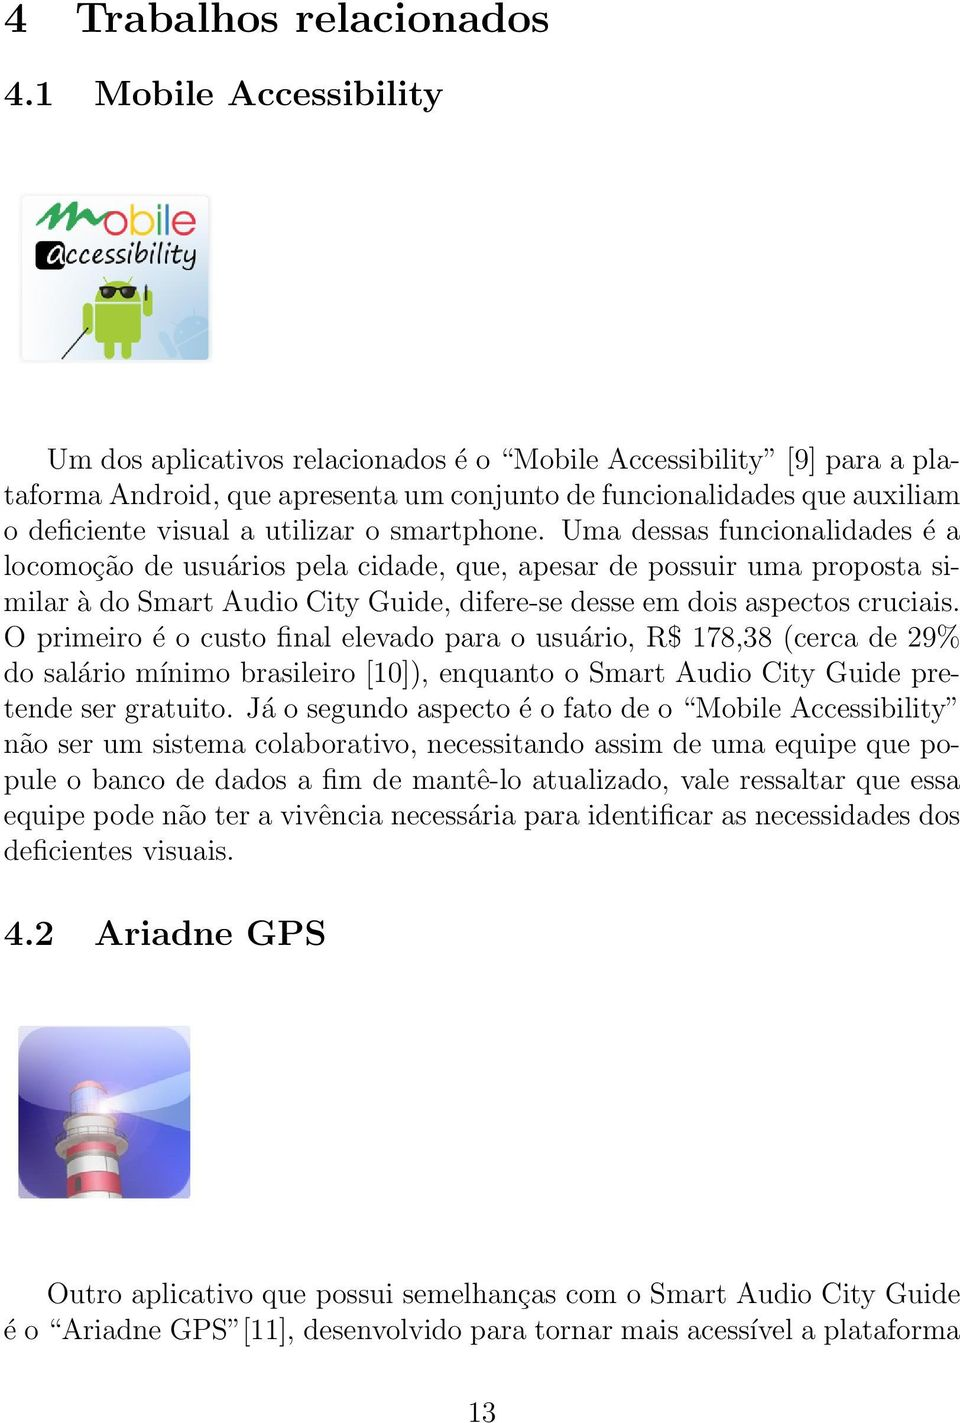 o smartphone. Uma dessas funcionalidades é a locomoção de usuários pela cidade, que, apesar de possuir uma proposta similar à do Smart Audio City Guide, difere-se desse em dois aspectos cruciais.